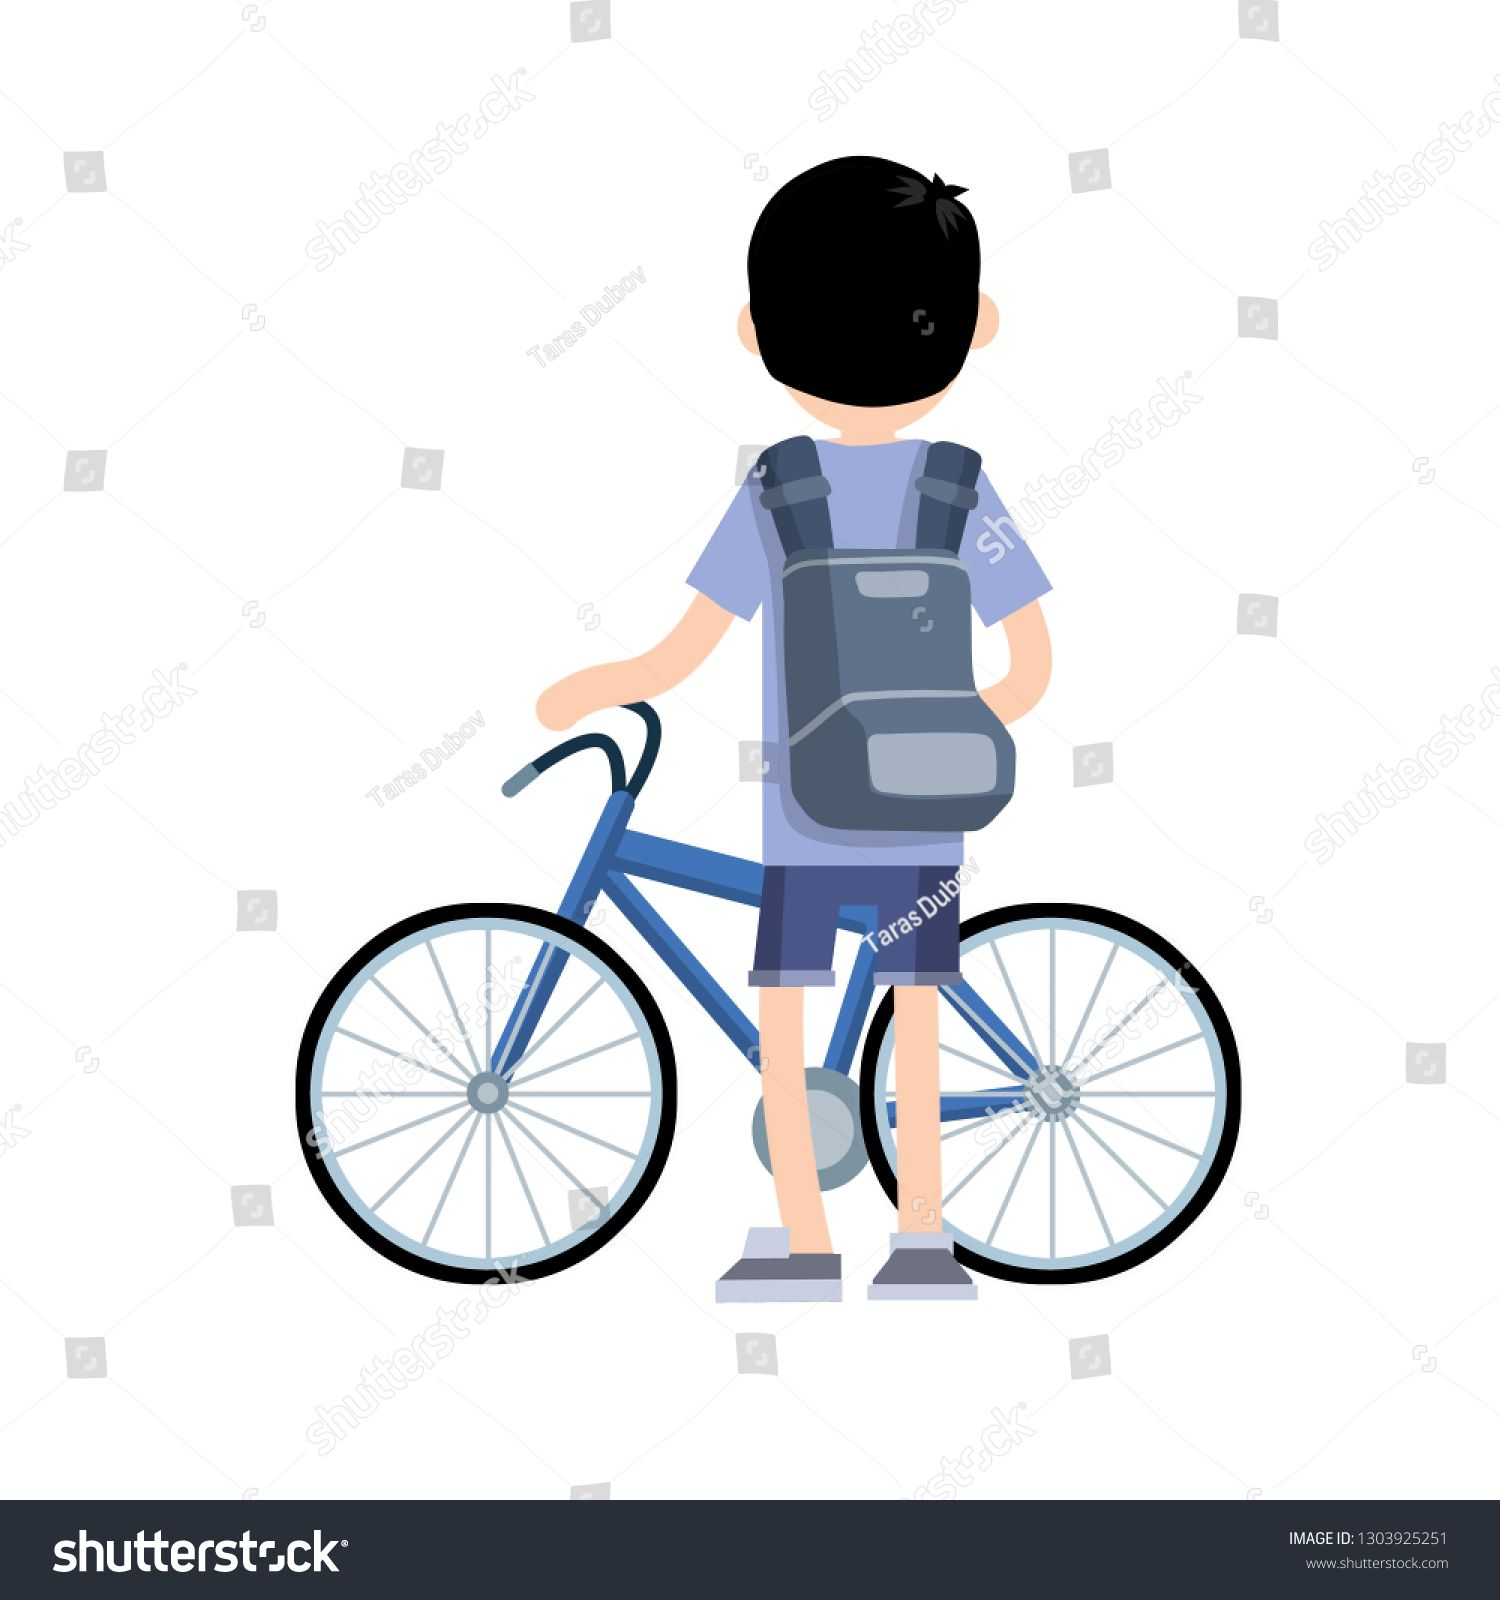 Man In Blue Clothes With A Backpack Riding A Bike A Young Boy And